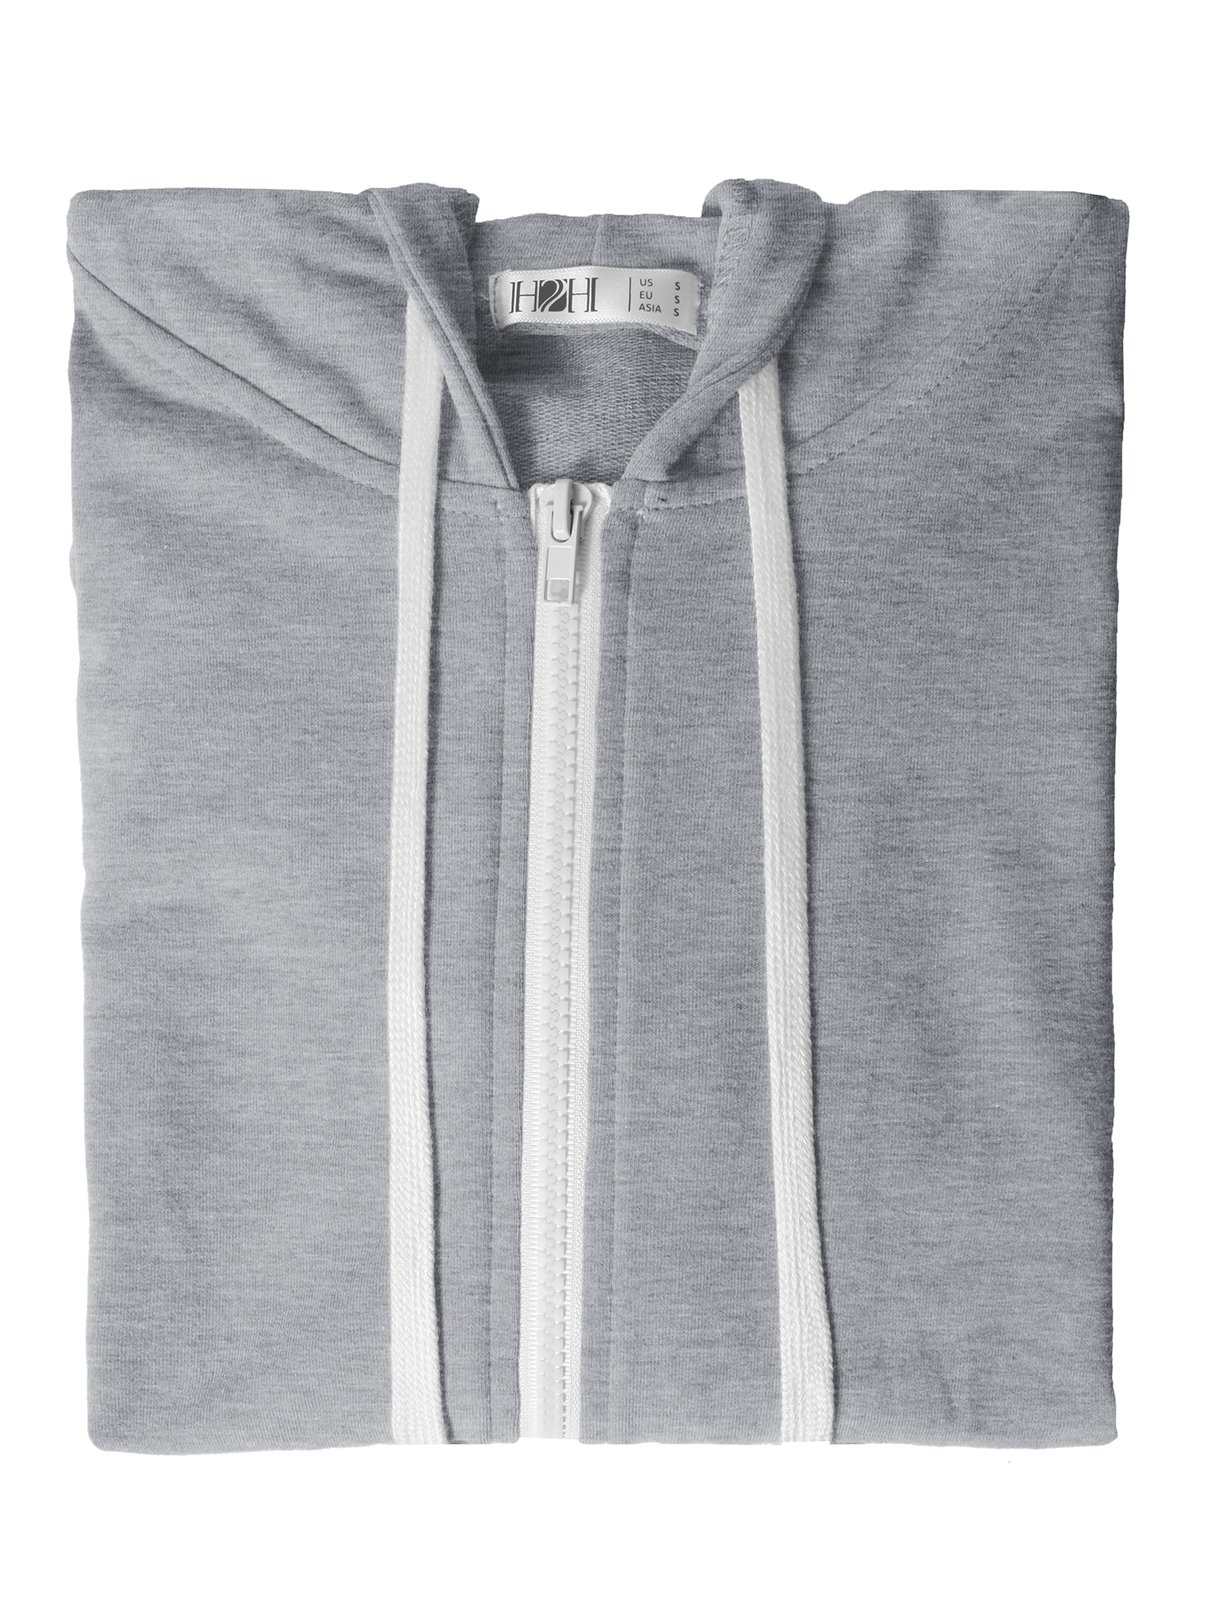 H2H Womens Soft Regular Fit Zip up Long Sleeve Fine Cotton Hoodie Jacket Gray US XS/Asia XS (CWOHOL020) by H2H (Image #6)